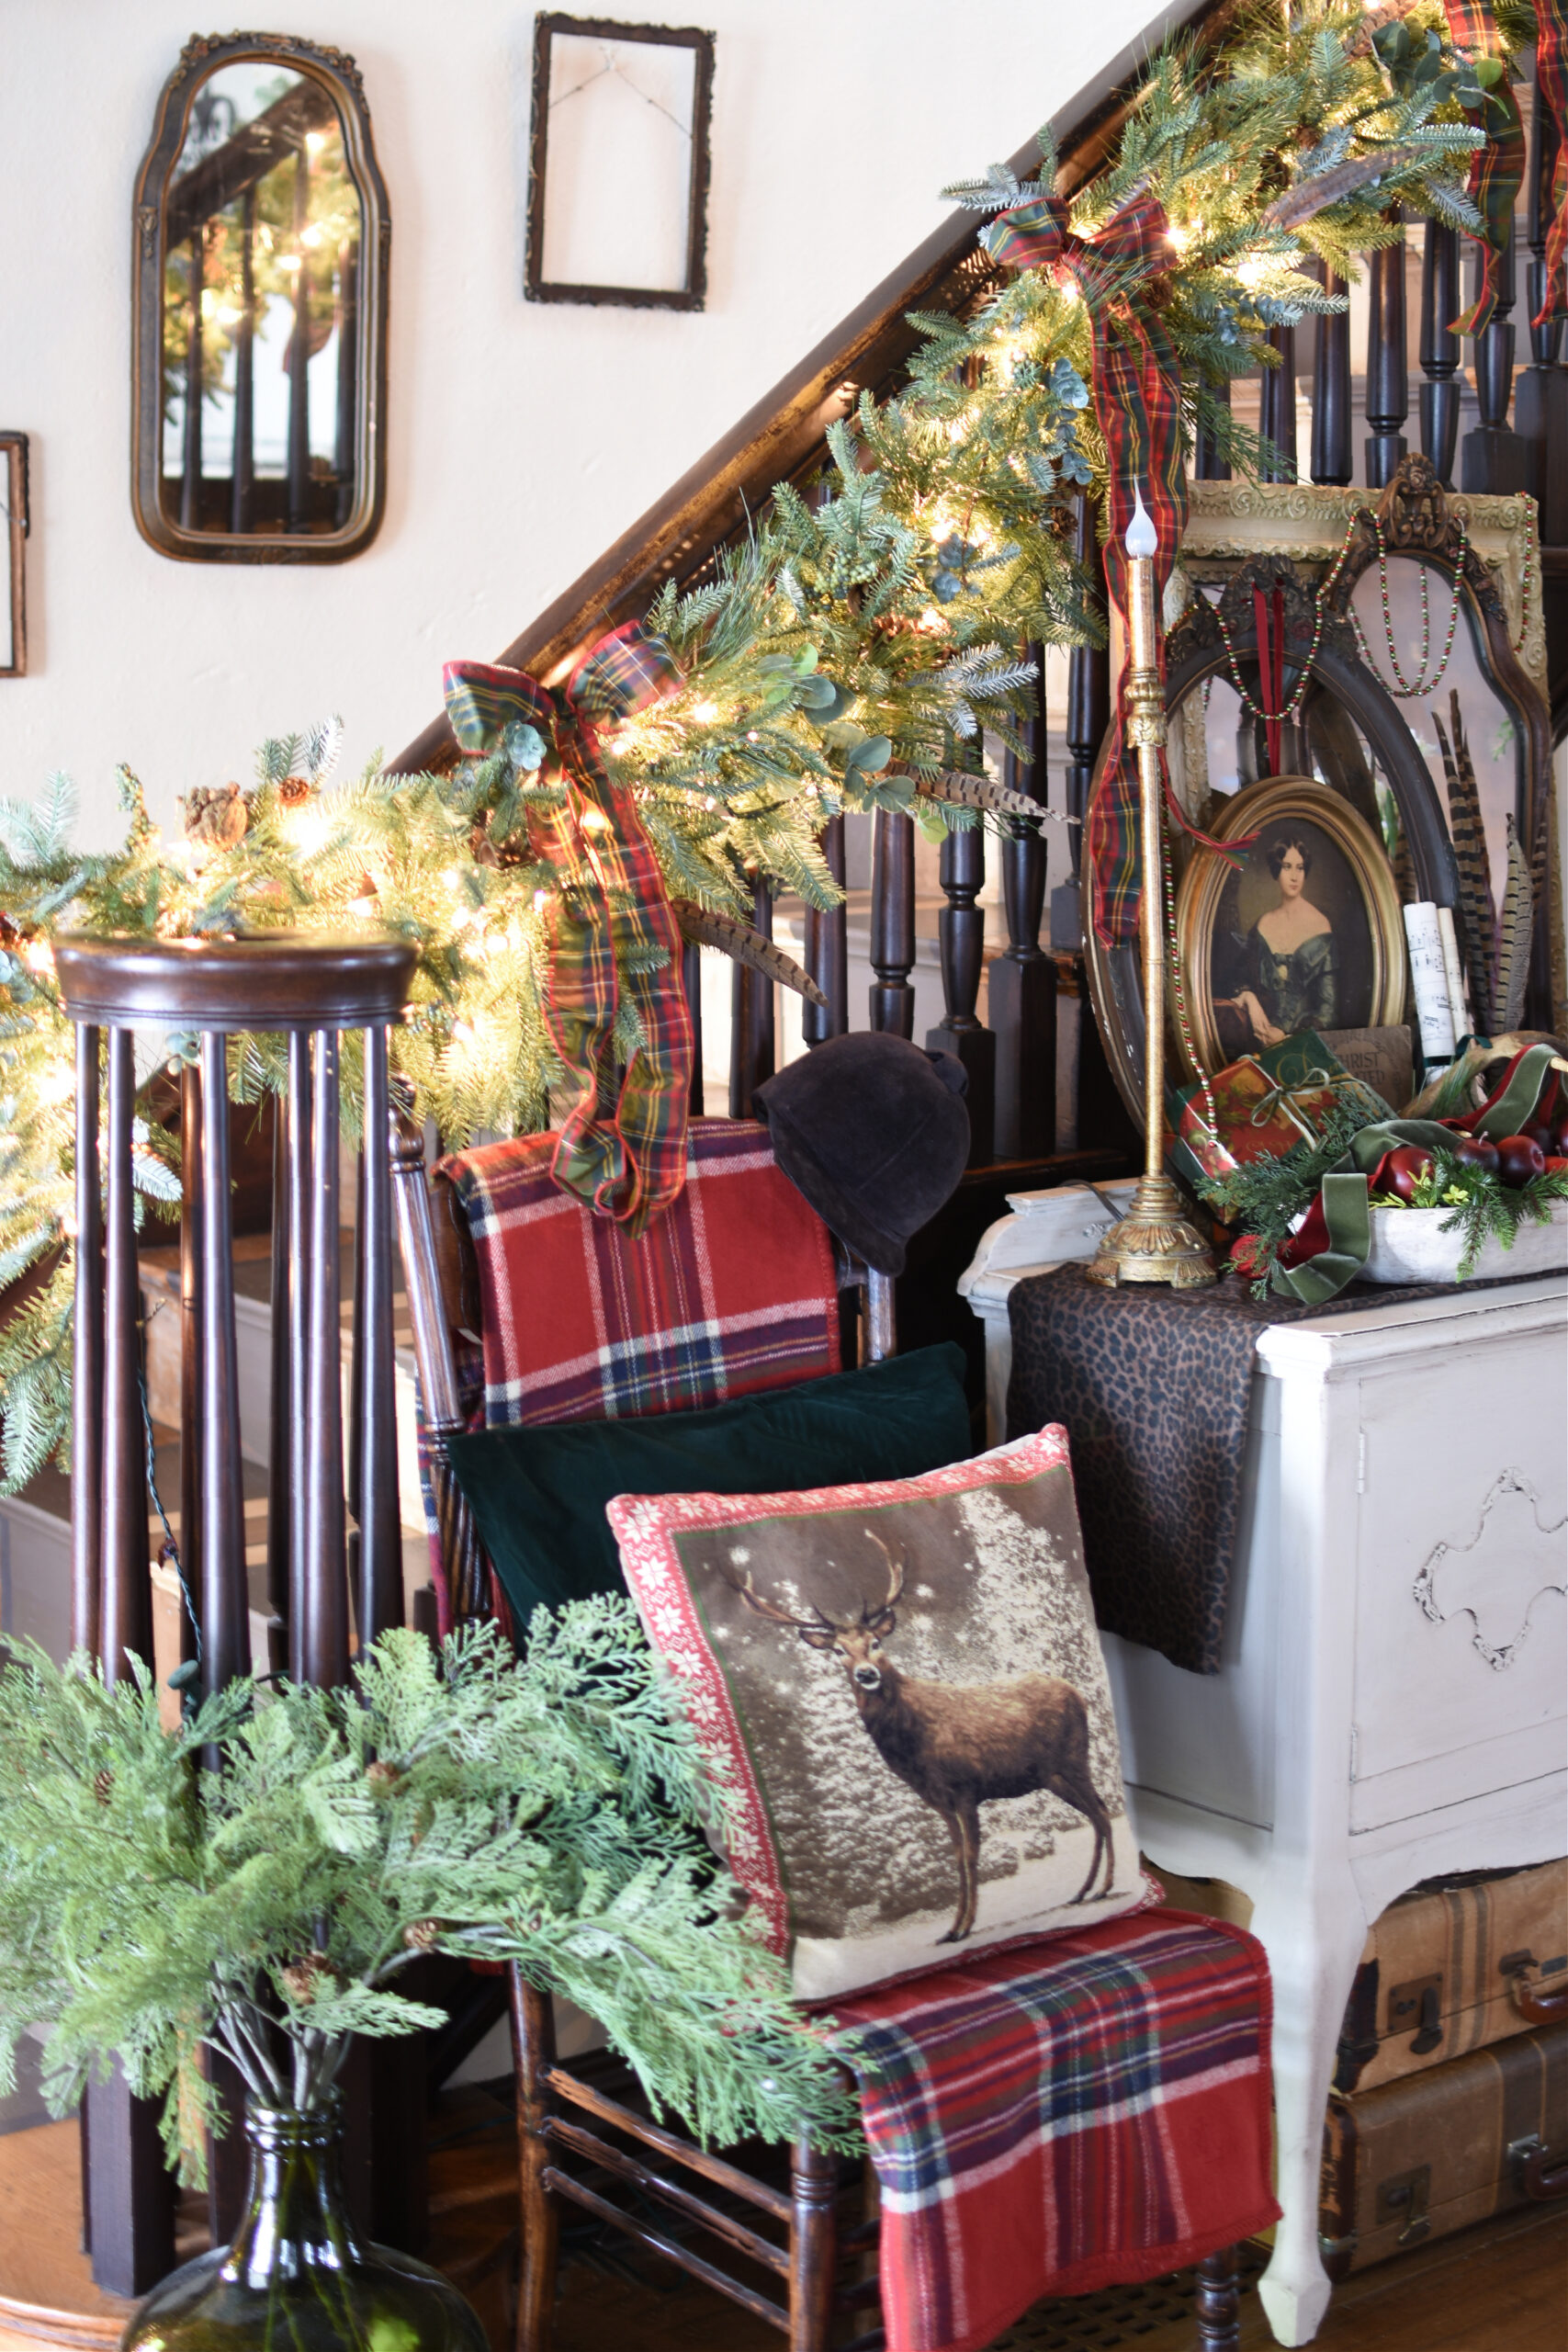 Traditional Christmas Decorating ideas Christmas Staircase garland with plaid bows. Cozy Christmas pillows. Using vintage finds and antique in Christmas decor